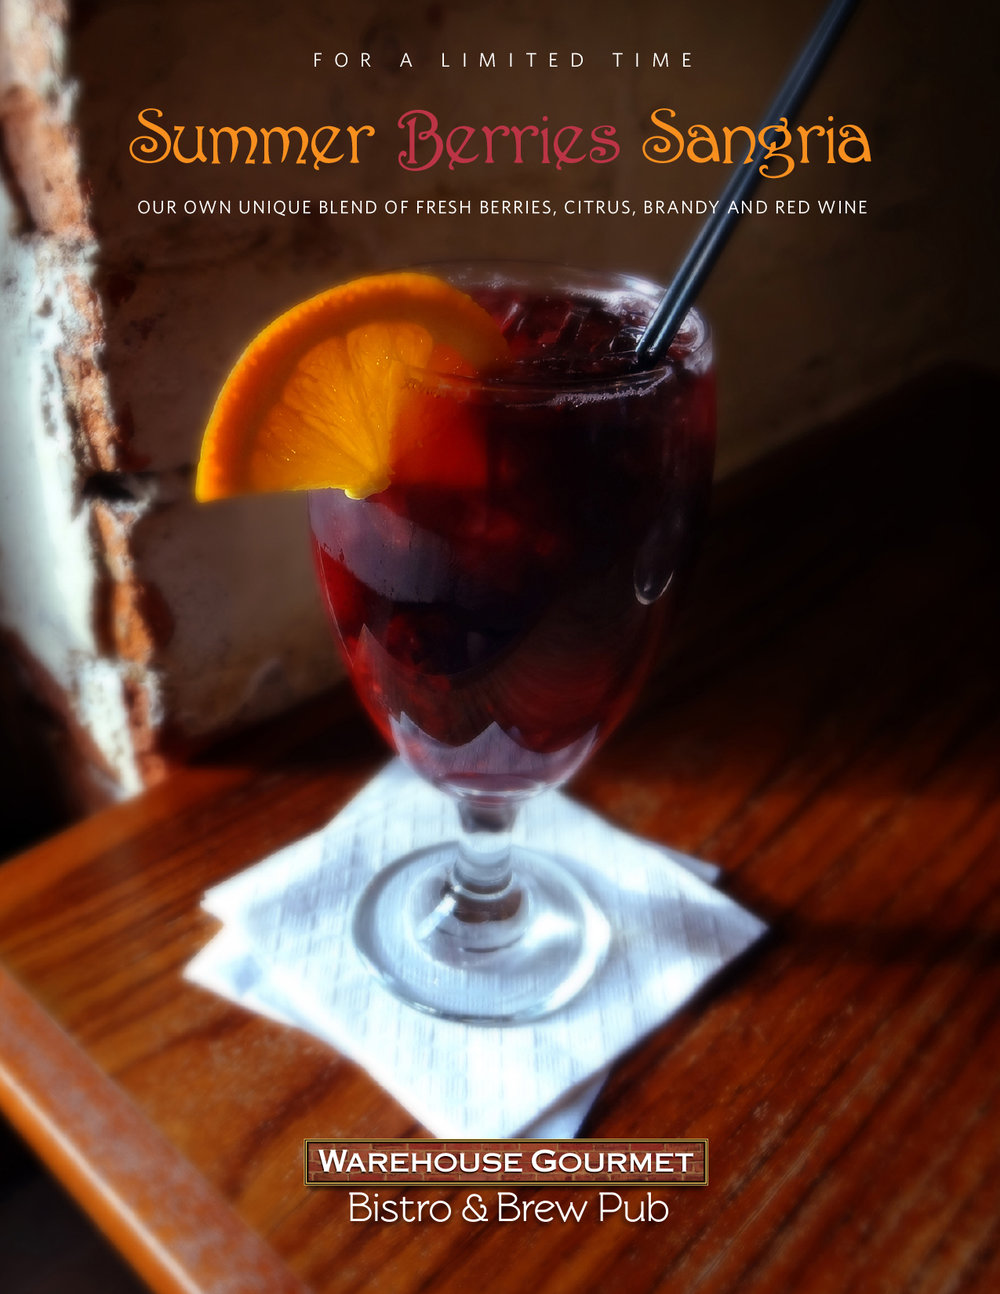 Summer Berries Sangria Ad.jpg